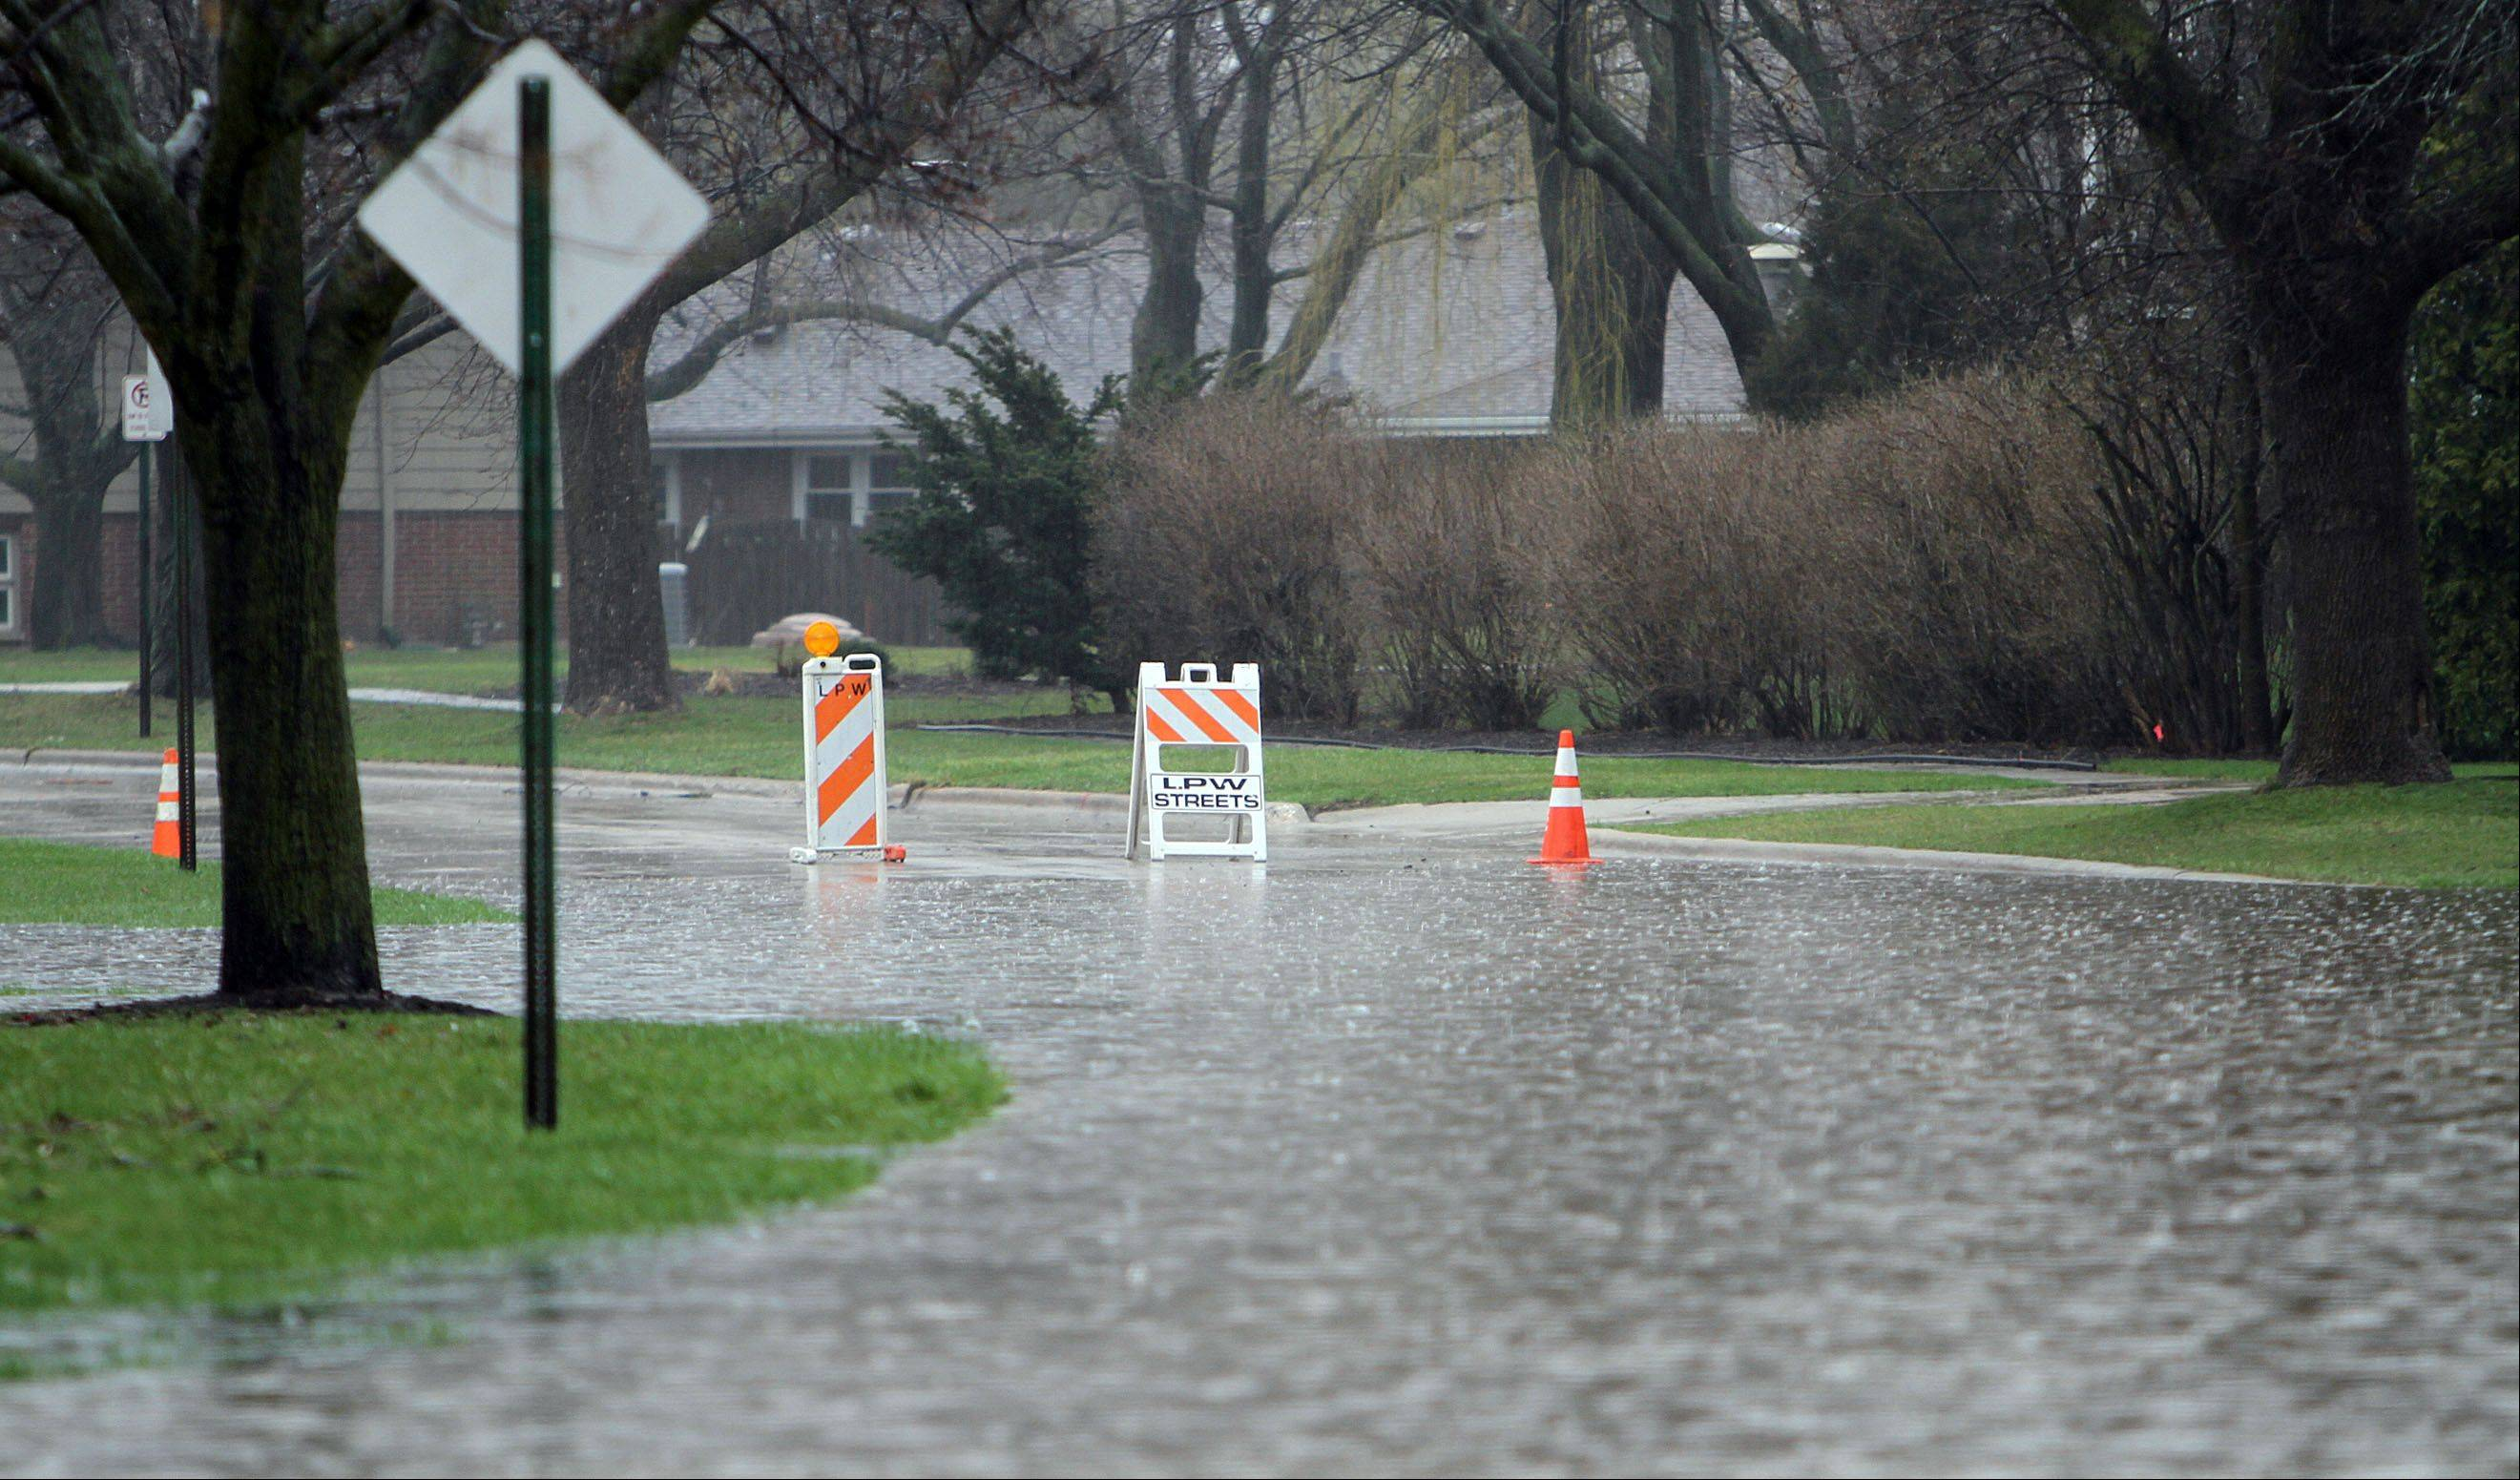 Crane St. in Libertyville was closed due to flooding Thursday morning in Libertyville.